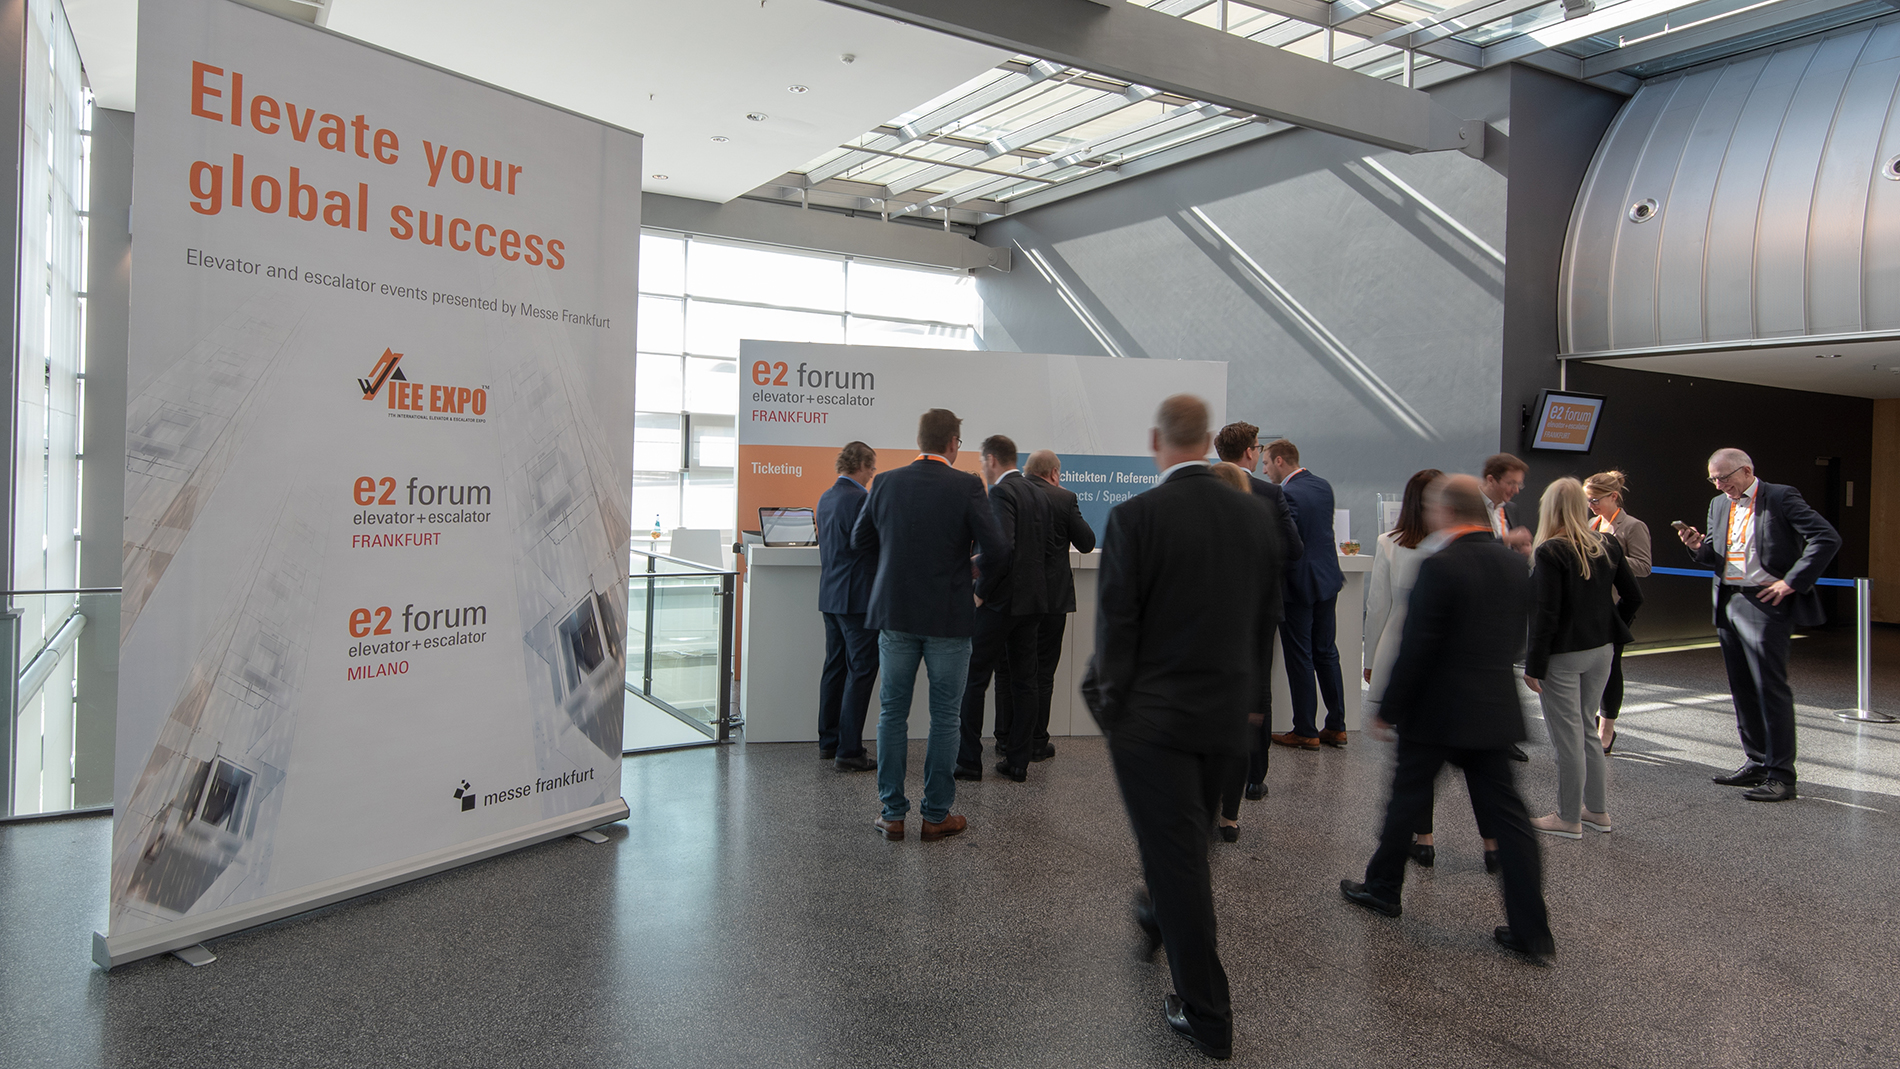 Visitors of E2 Forum Frankfurt